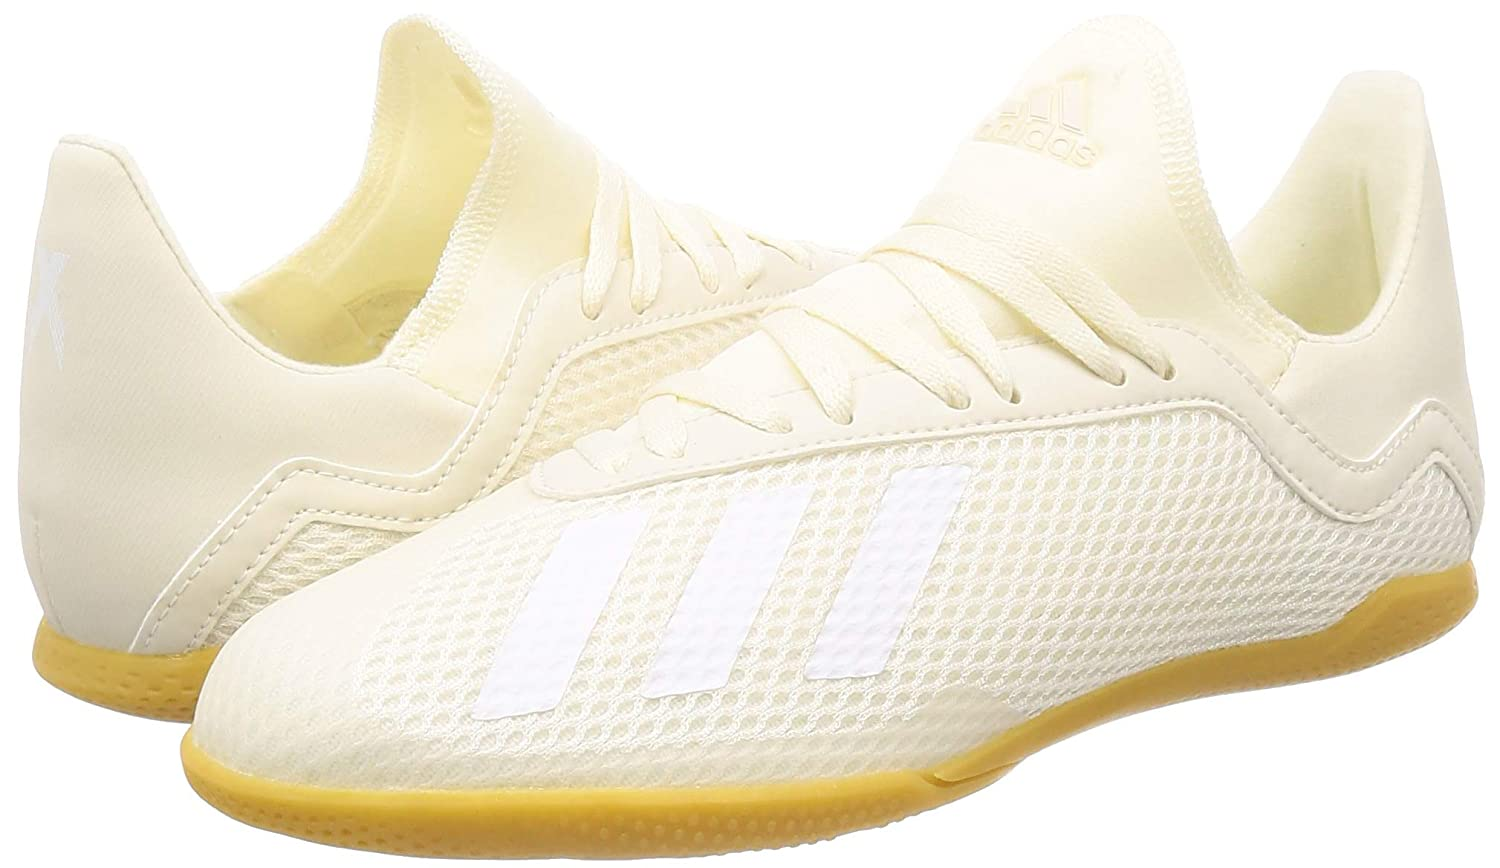 adidas X Tango 18.3 In J, Zapatillas de Fútbol para Niños, Blanco (Off Core Black/FTWR White), 35.5 EU: Amazon.es: Zapatos y complementos